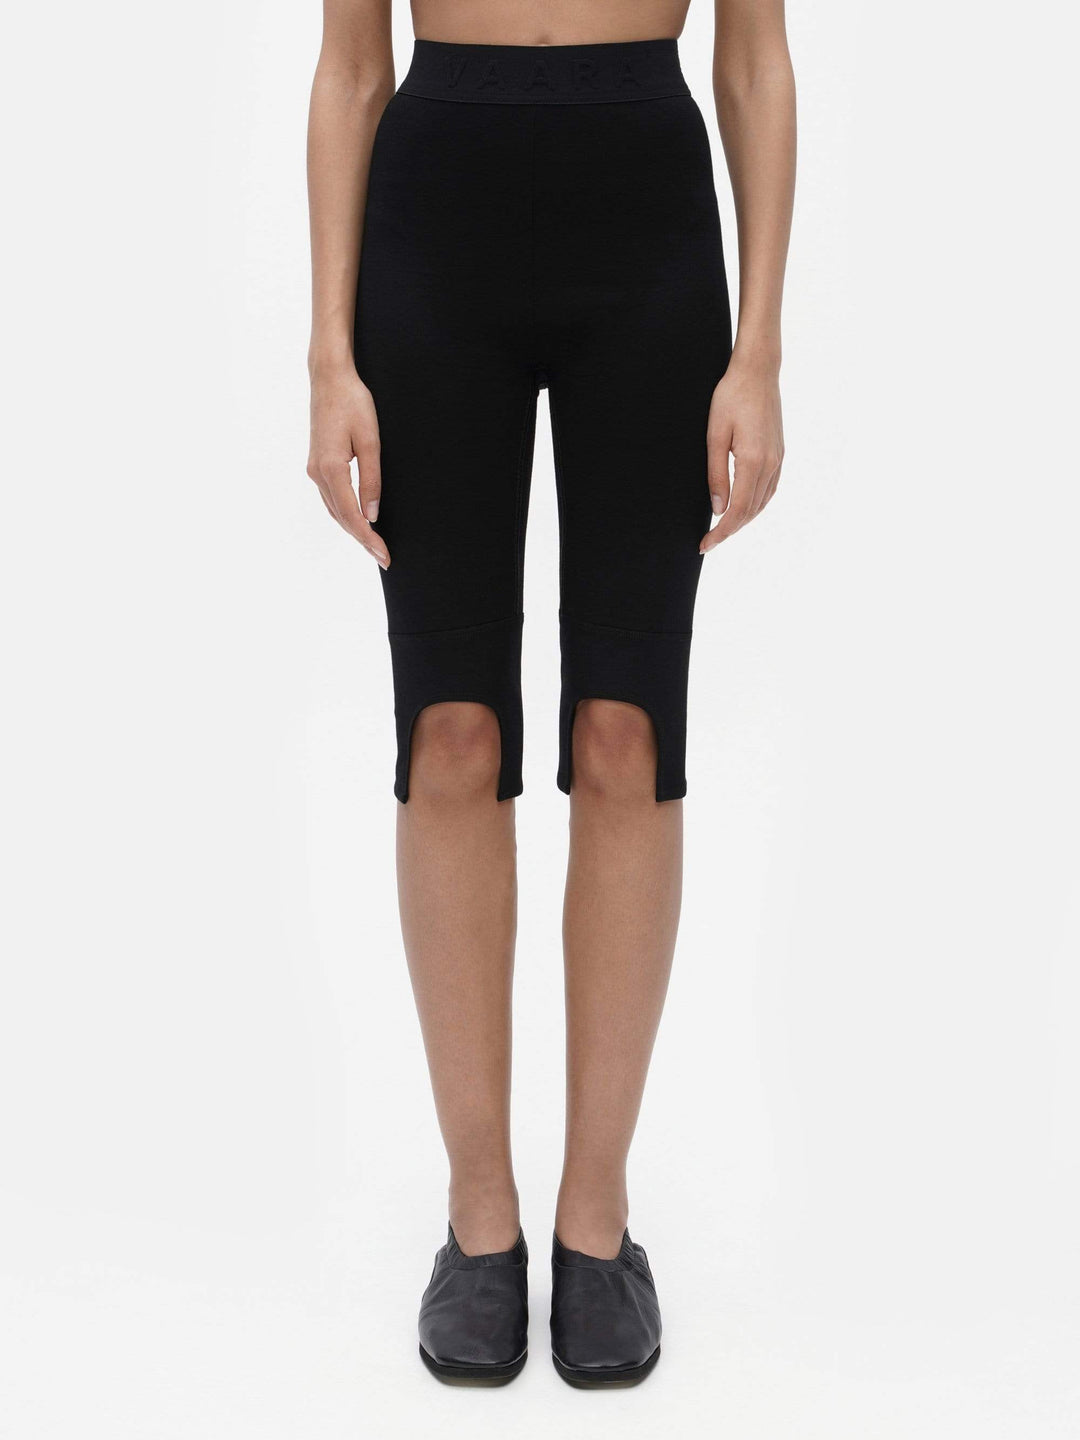 Everyday Knee Length Legging Black